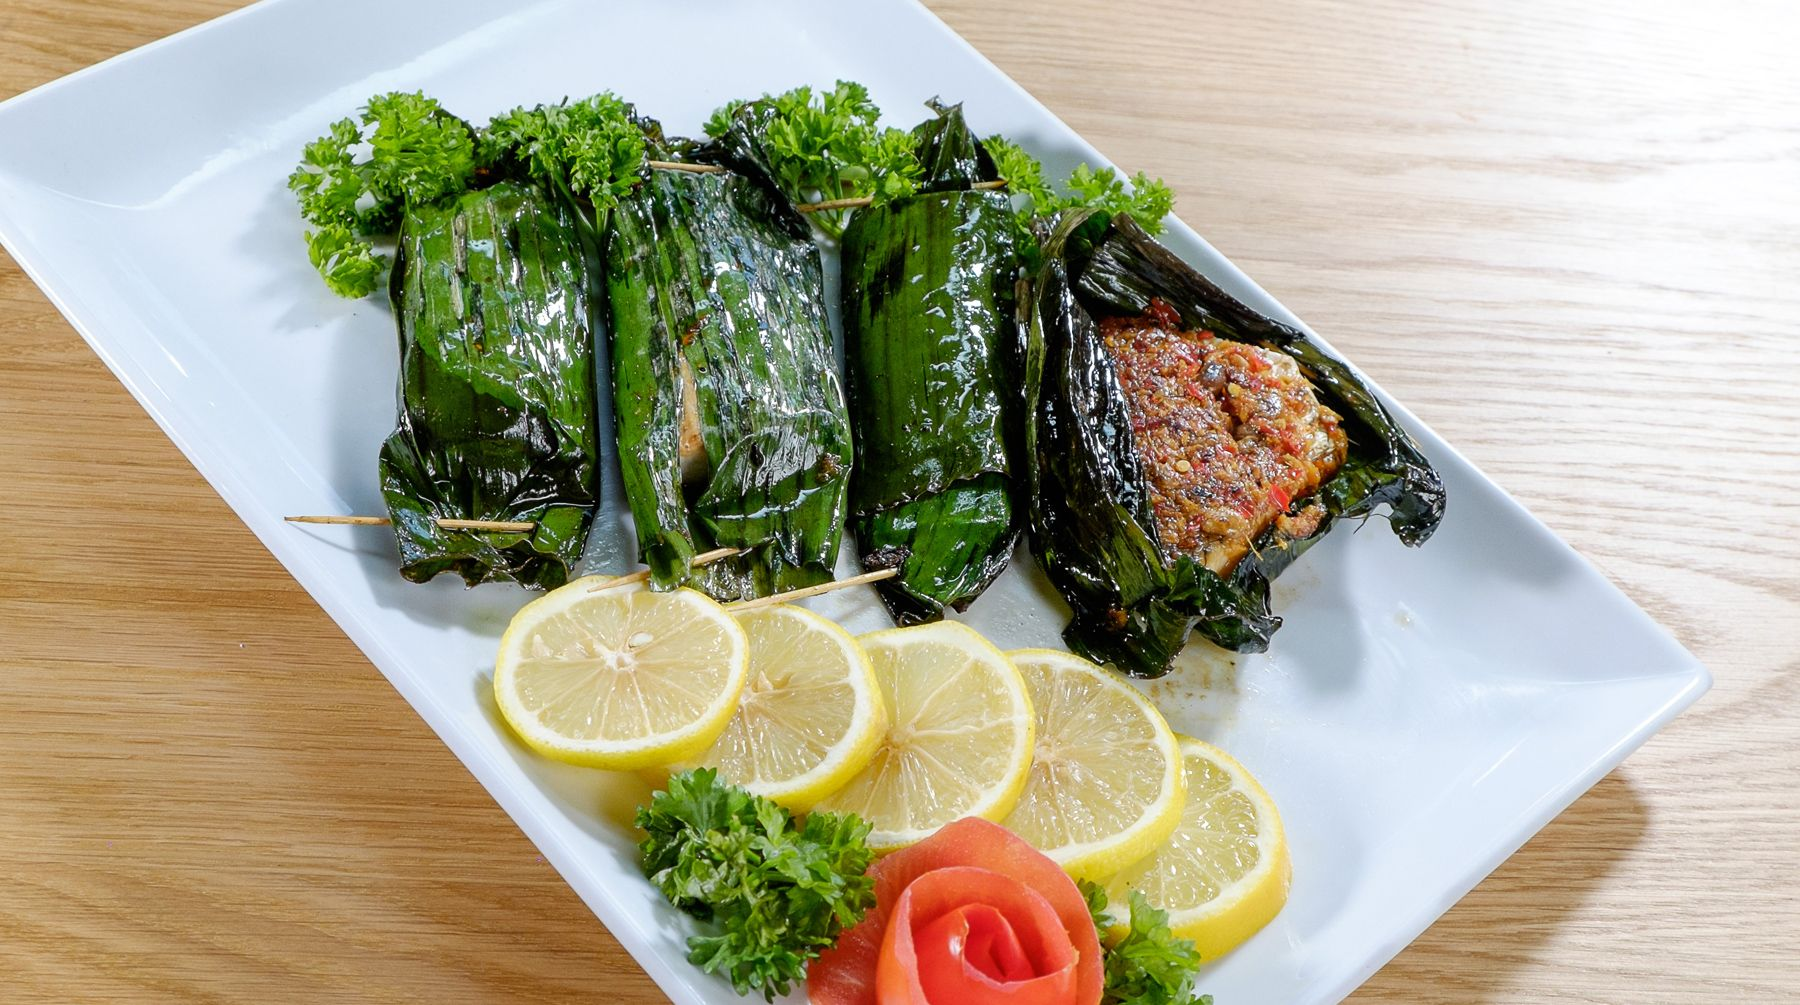 Family Kitchen With Sherson Recipes Ikan Bakar Grilled Fish Asian Food Channel Asian Food Channel Asian Recipes Food Network Recipes